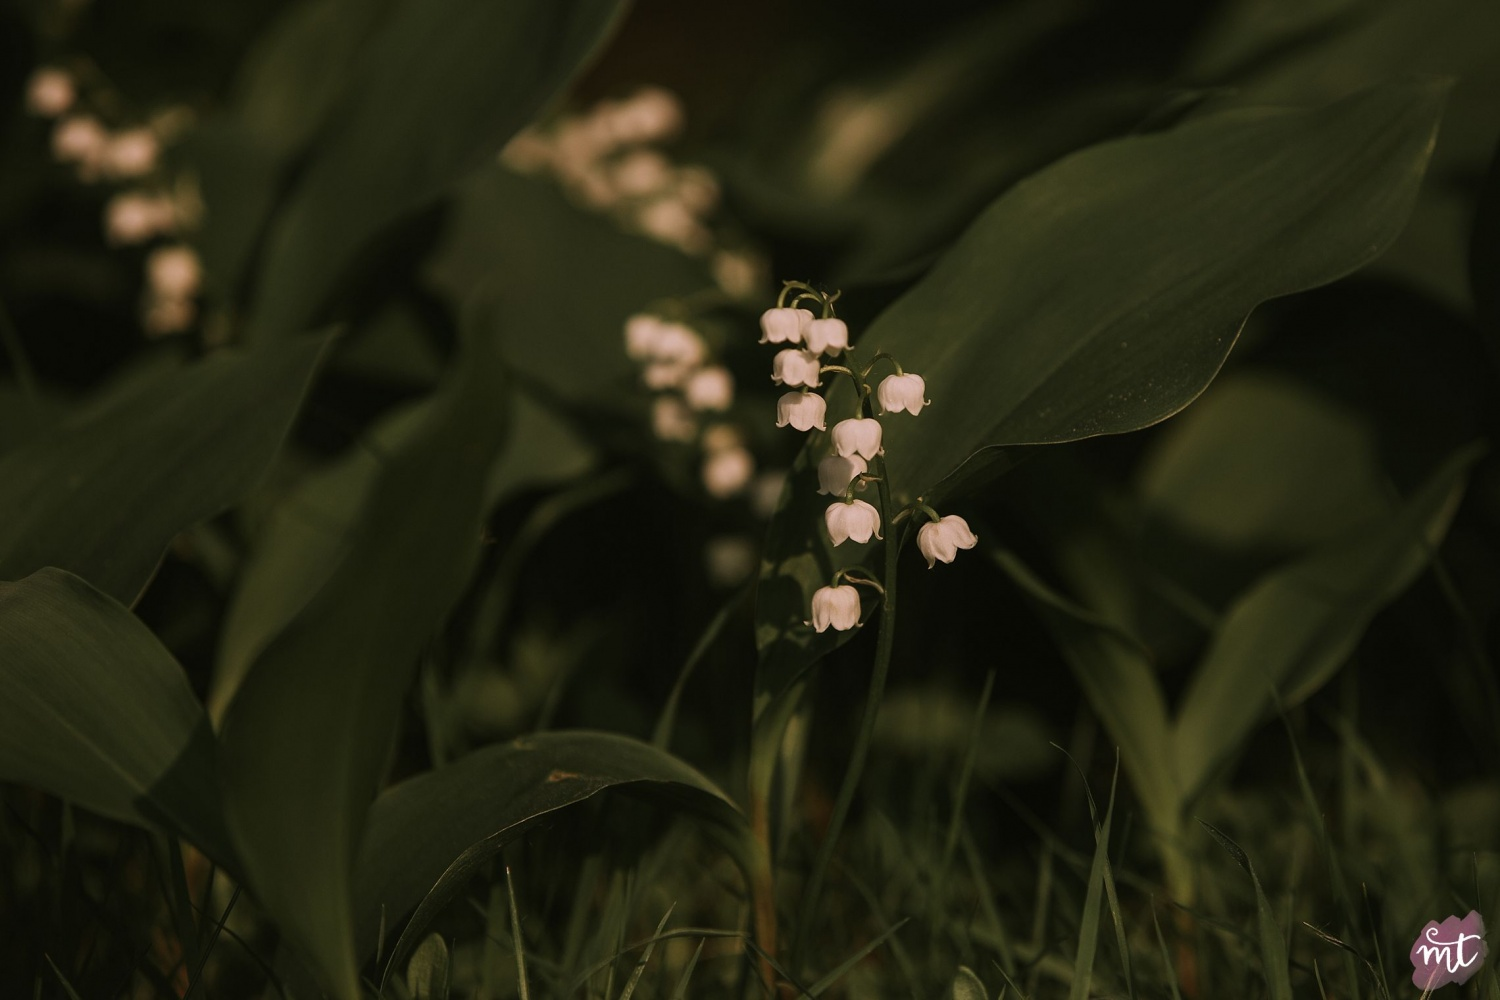 Seasons, Summer, Natural Light, UK Photographer, Real Life, Mother Nature, Lily of the Valley